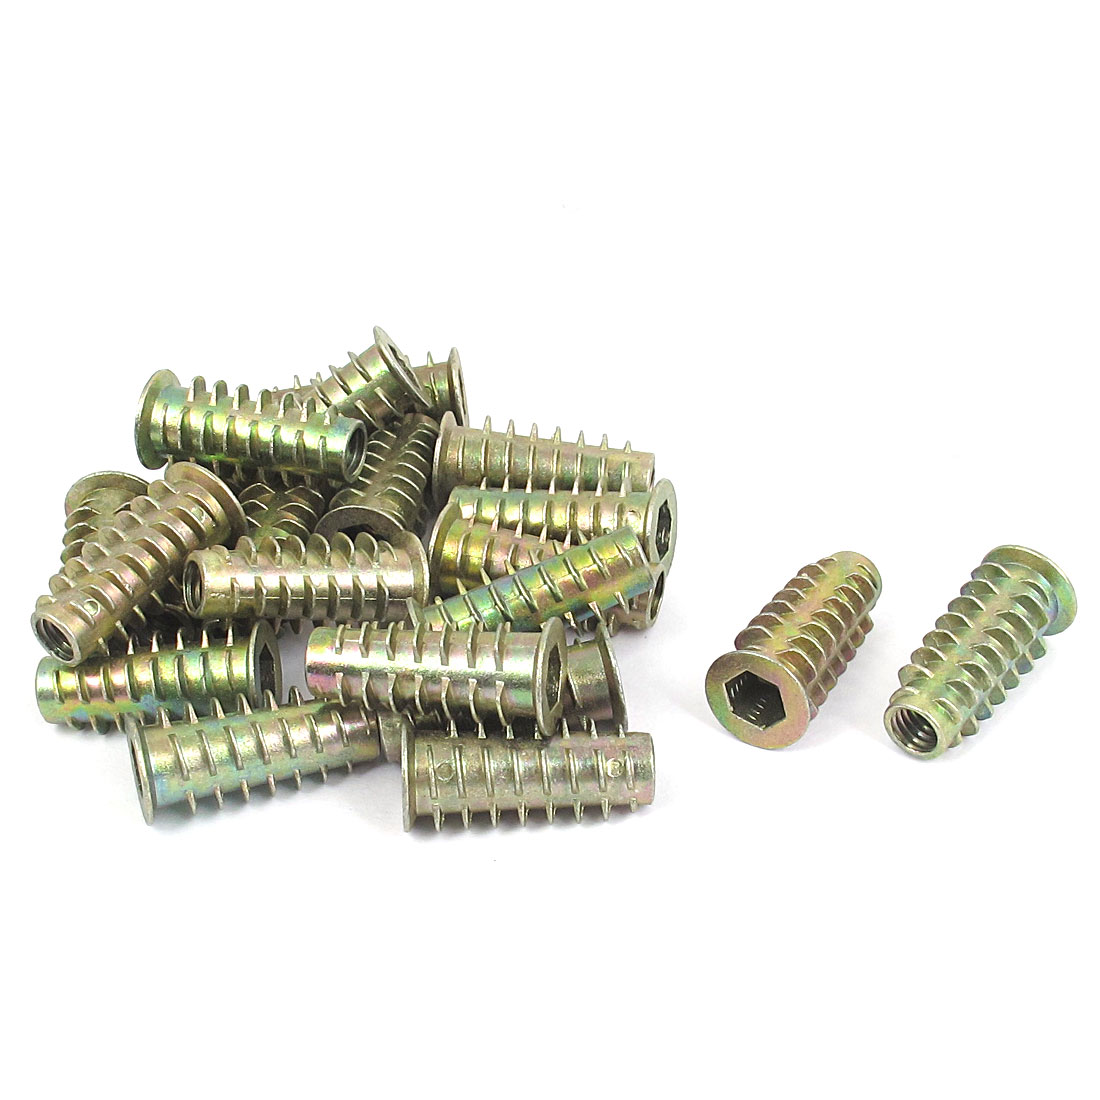 20 Pcs M6x25mm Zinc Plated Hex Socket Screw in Thread Insert Nut for Wood